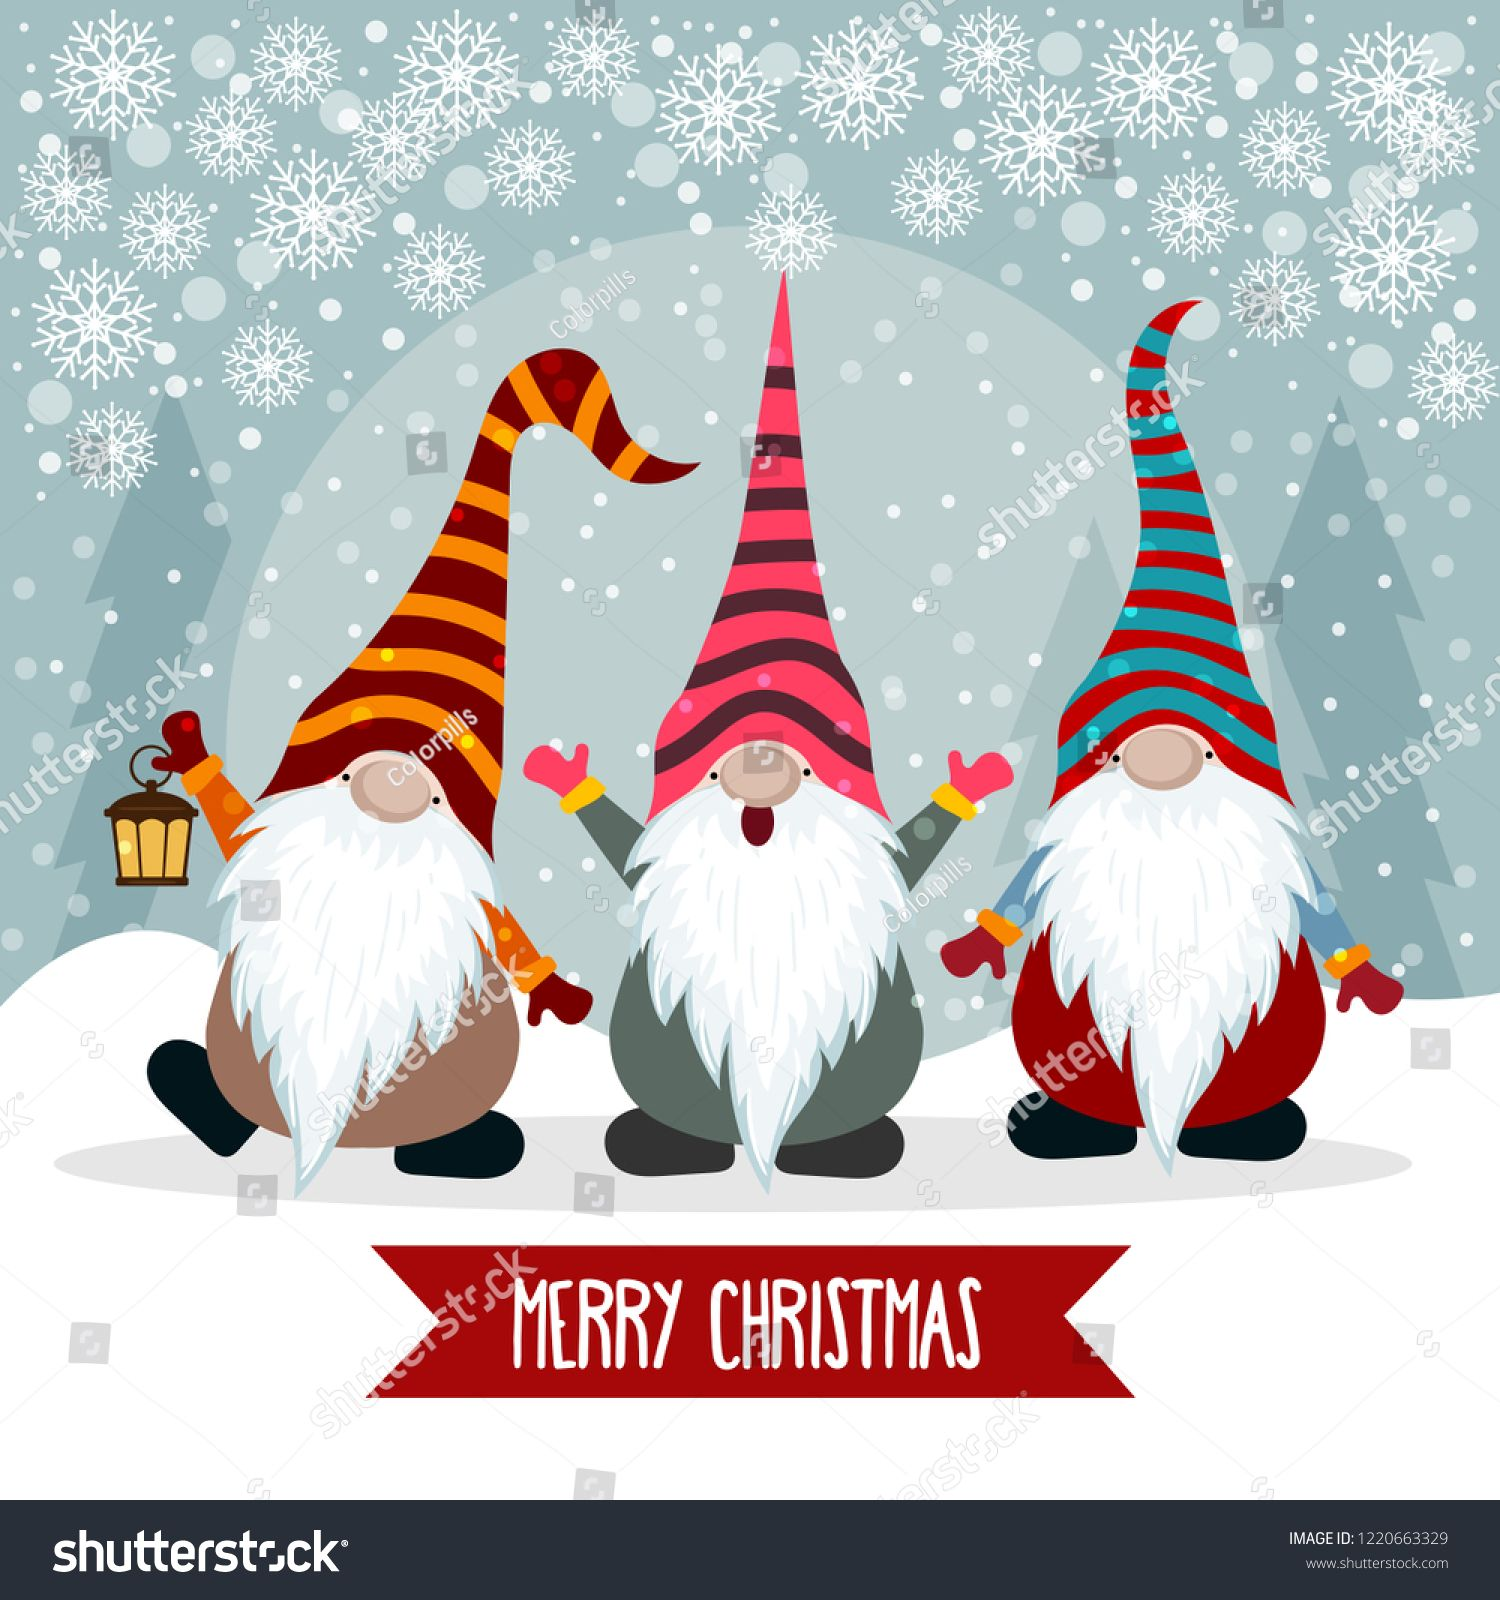 Christmas Card With Cute Gnomes Flat Design Vector Sponsored Ad Cute Card Christmas Gnomes Funny Gnomes Christmas Drawing Christmas Paintings